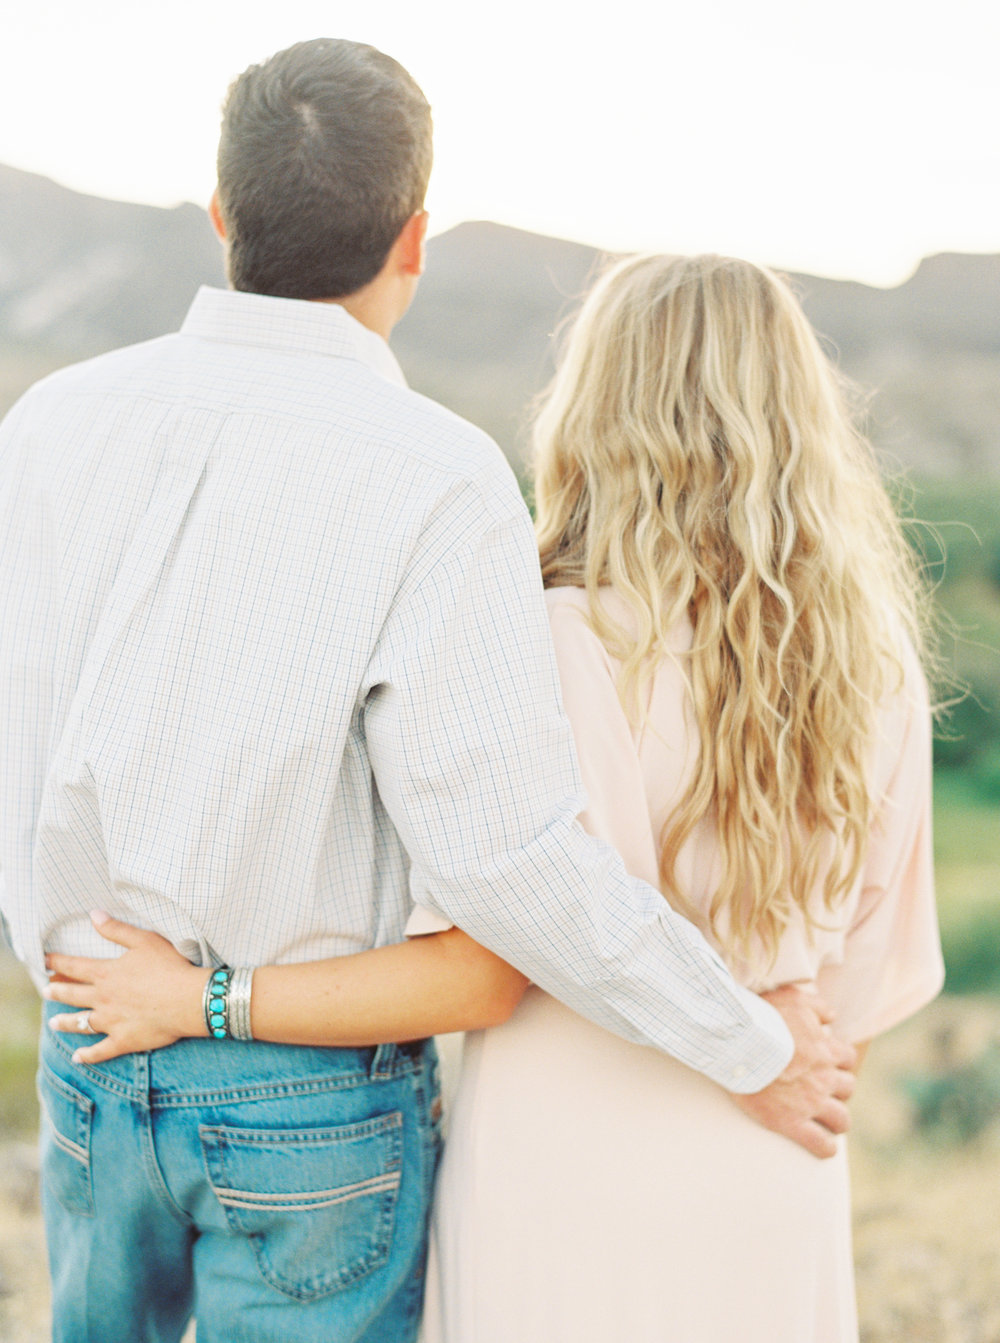 Engagement Session Outfits-183.jpg